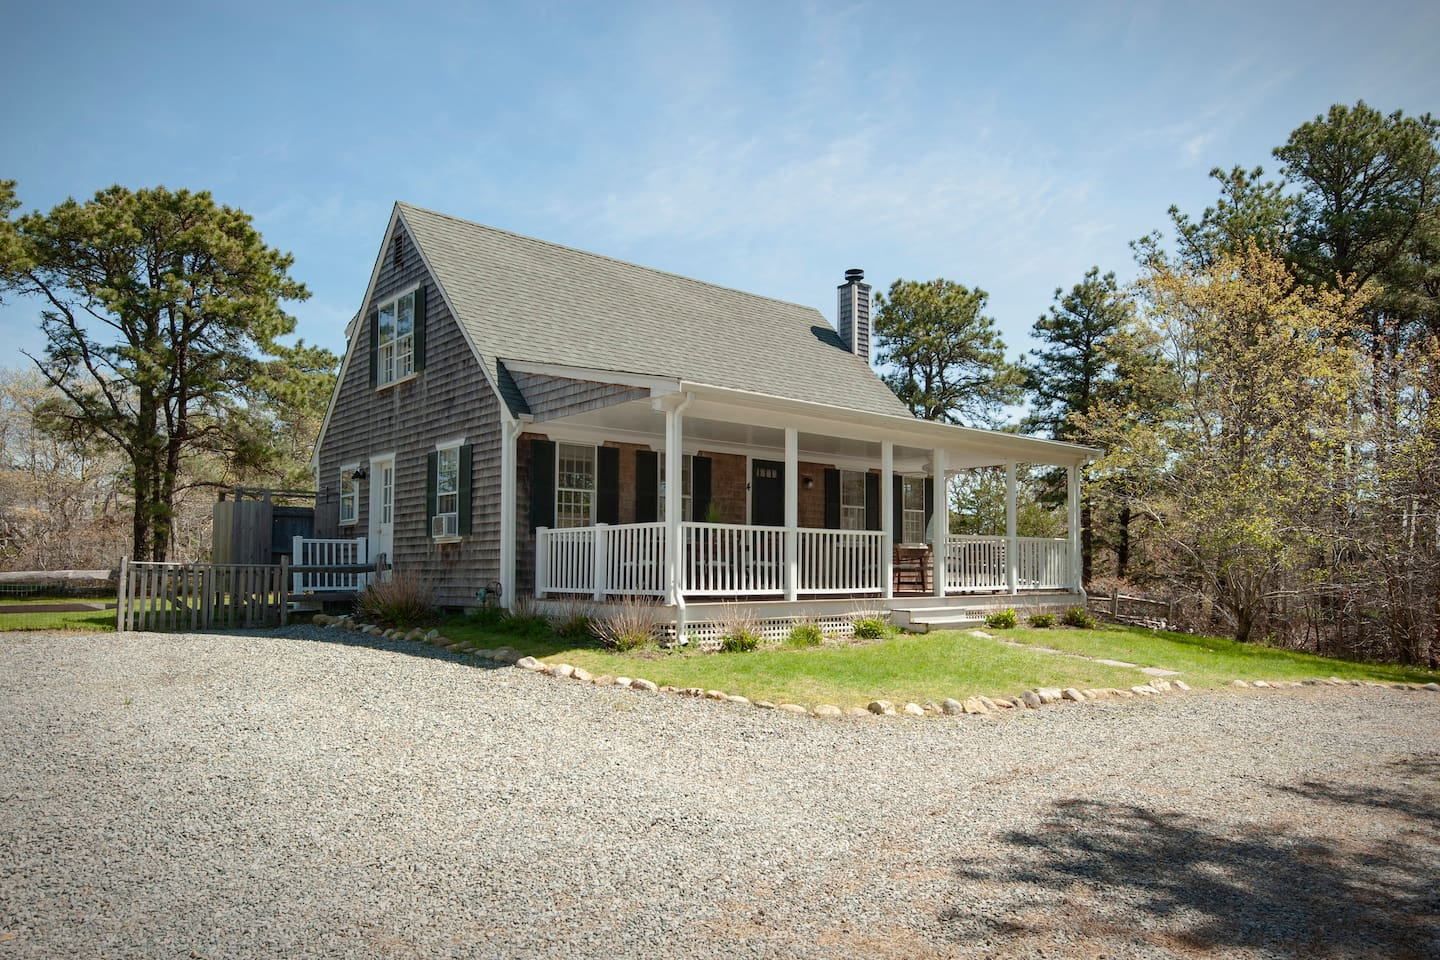 Welcome to 4 Quail Path - a traditional Cape Cod home newly renovated with a modern touch.